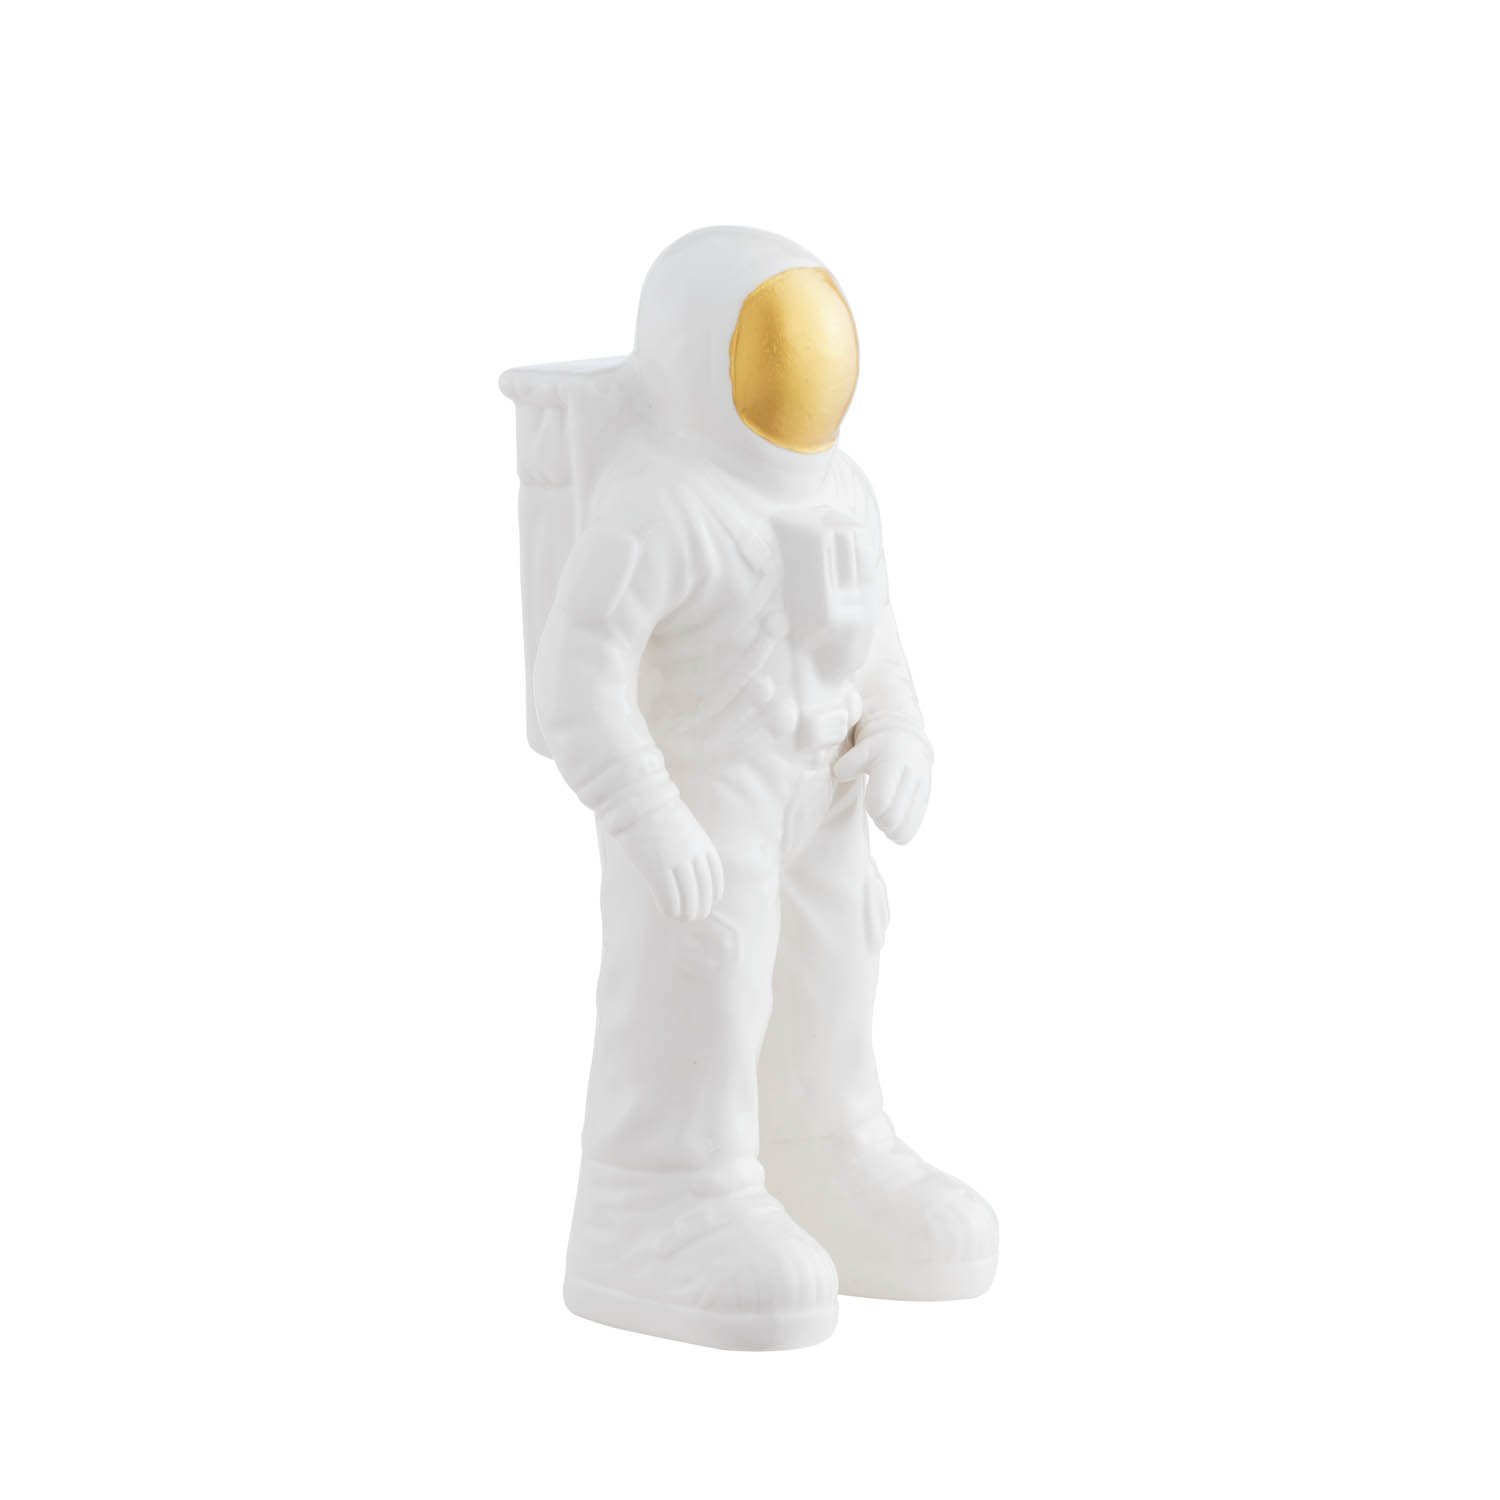 Primary image for Lunar Astronaut Figurine